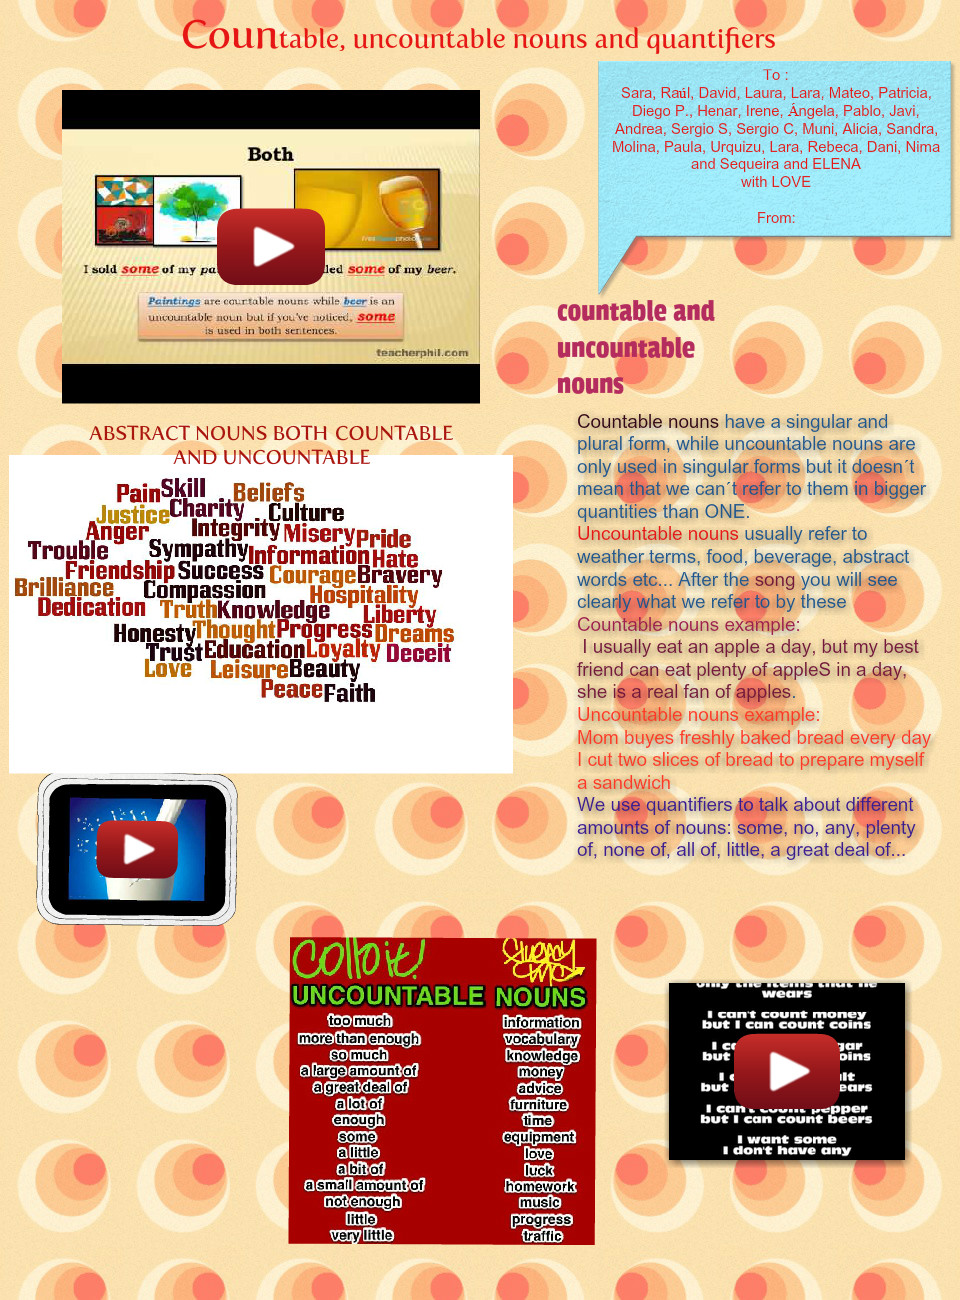 countable and uncountable nouns  text  images  music  video